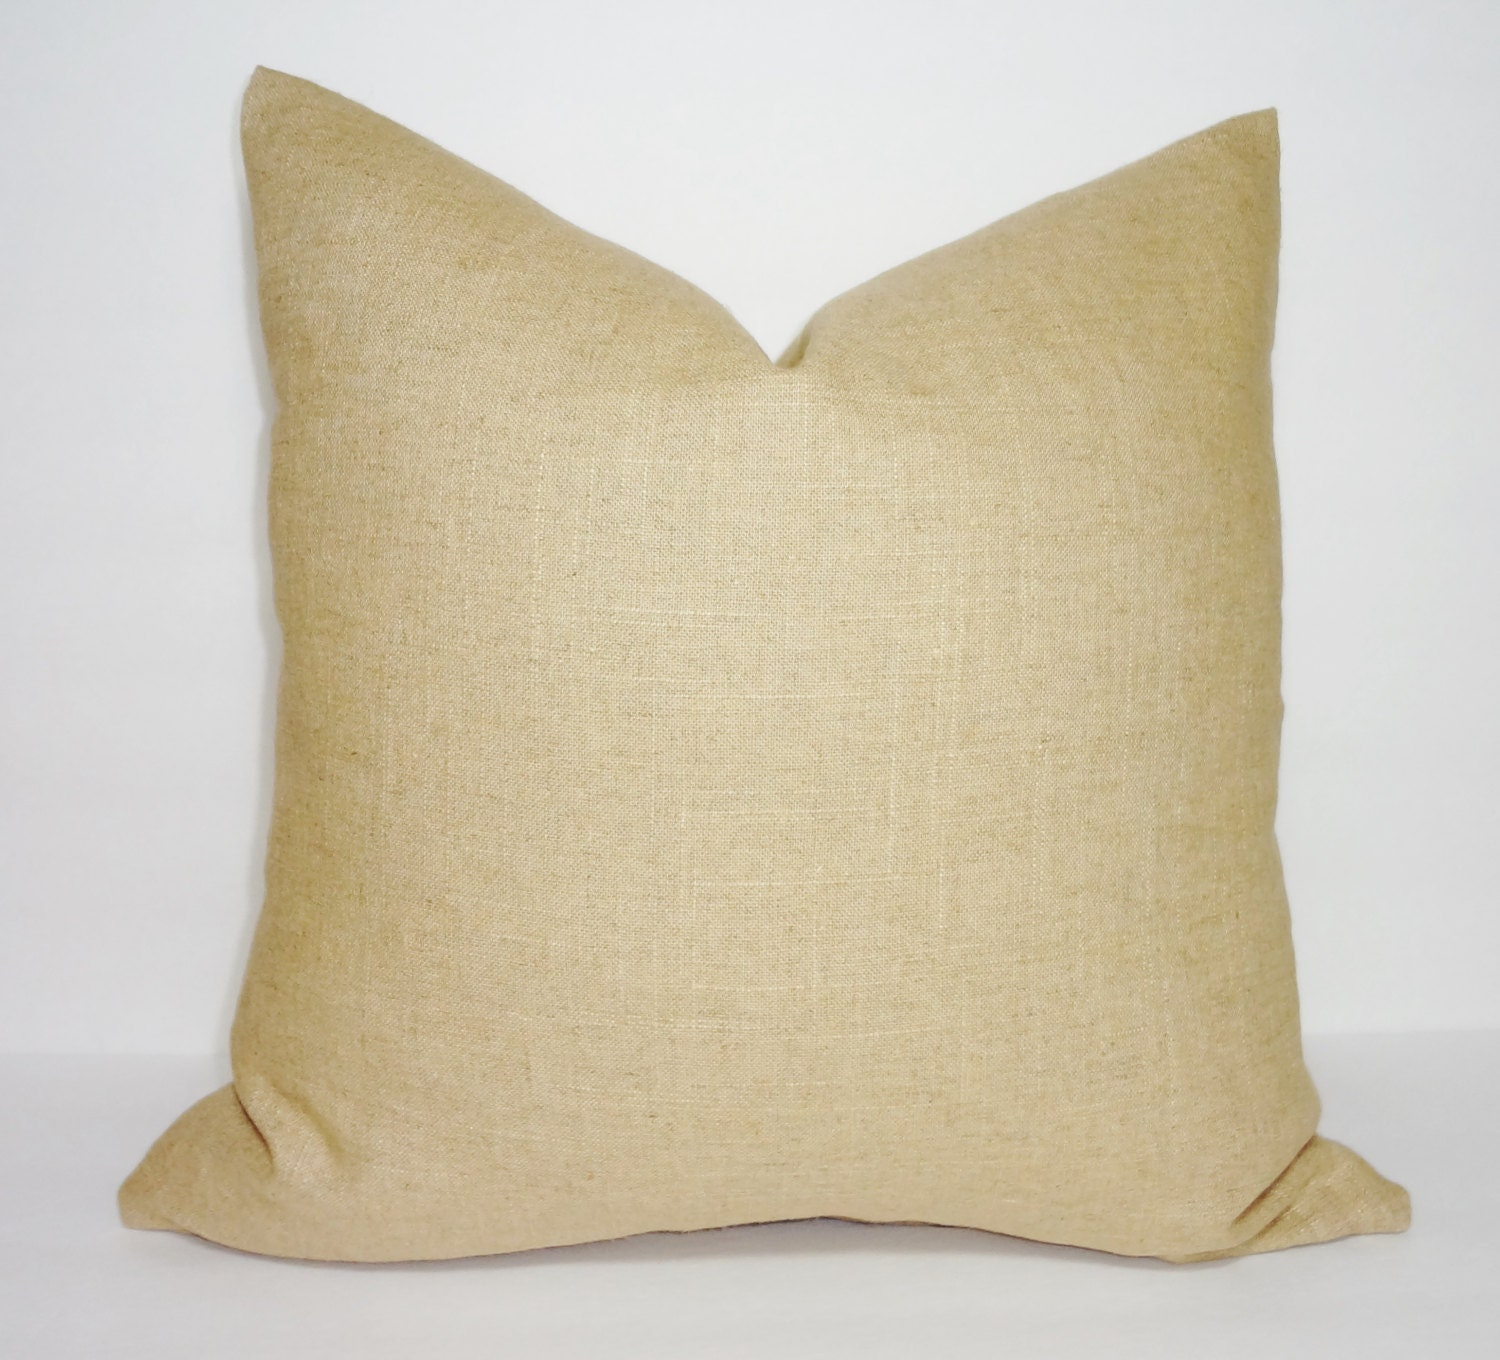 Solid Decorative Throw Pillows : Solid Tan Linen Pillow Cover Decorative Pillow Cover Throw